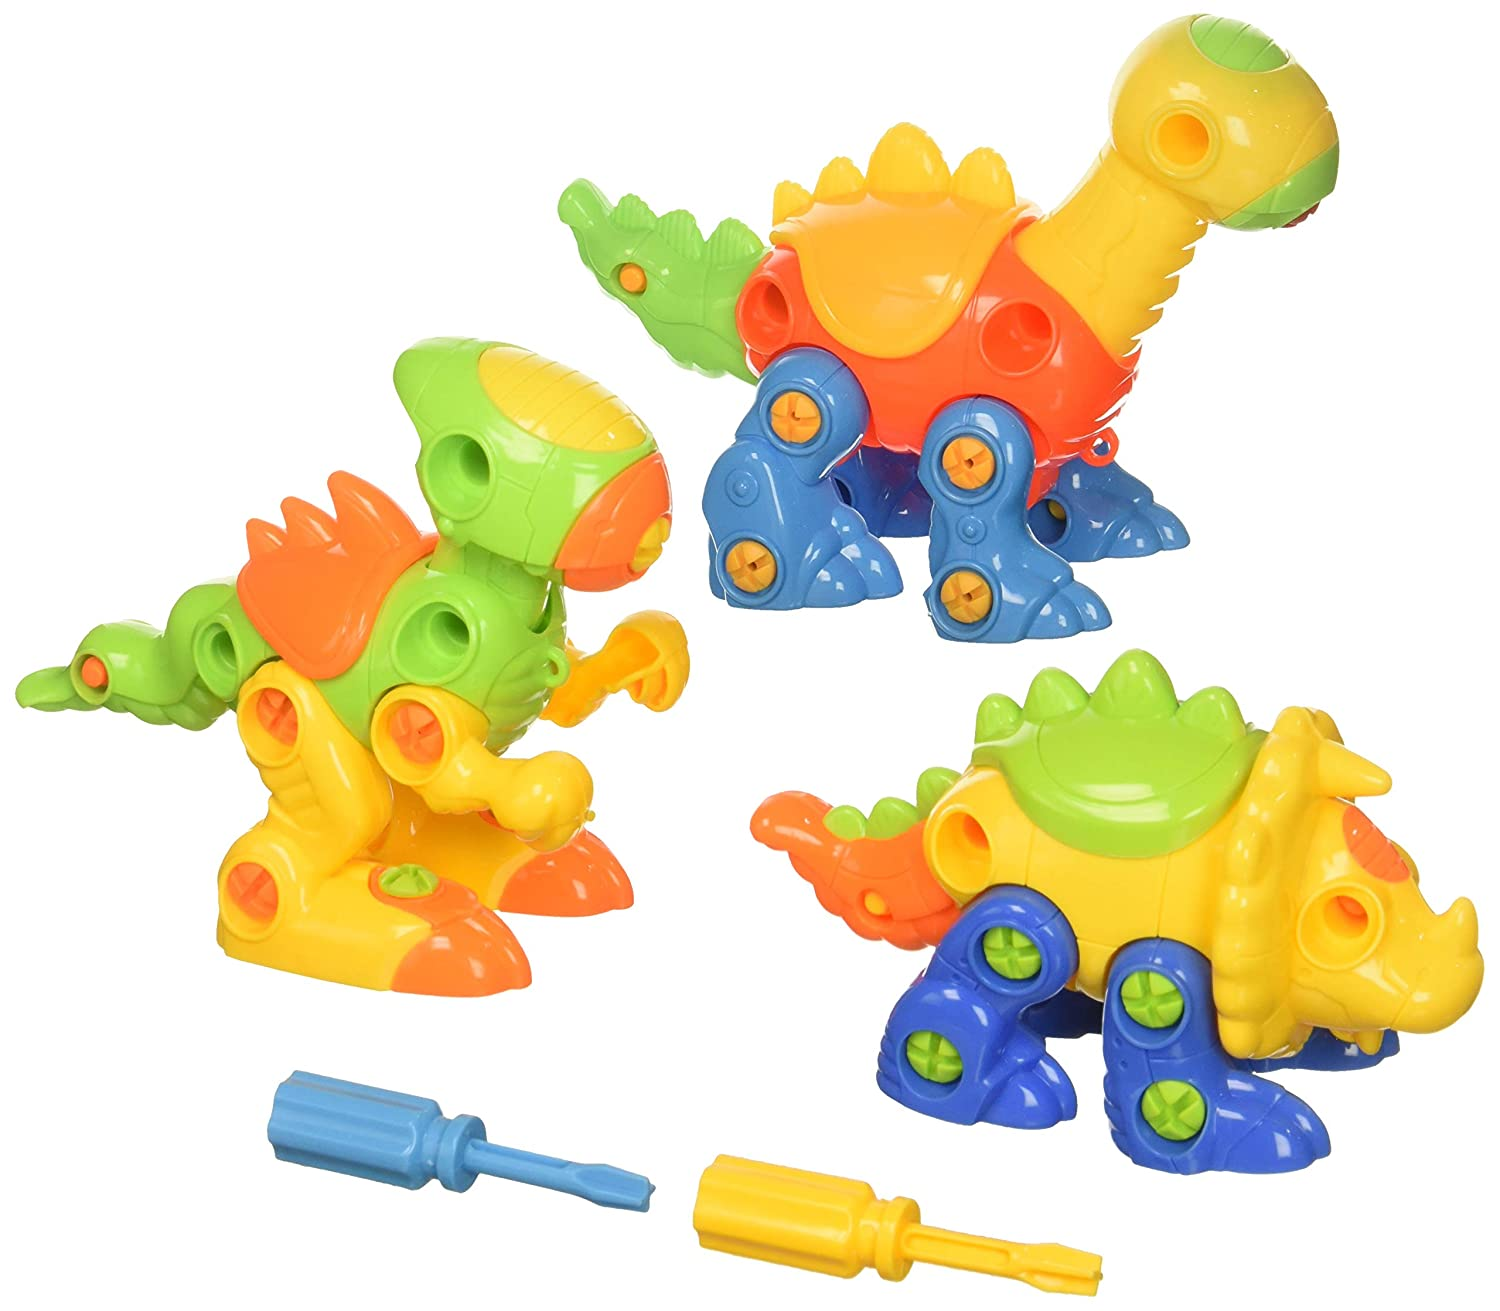 DIY Toy Including Screws and Screwdrivers,Best Toy Gift Kids Ages 3yr 106-Piece 8yr. Dimple Roaring Sound Dinosaur Toys Build Your Own and Take Apart Pack of 3